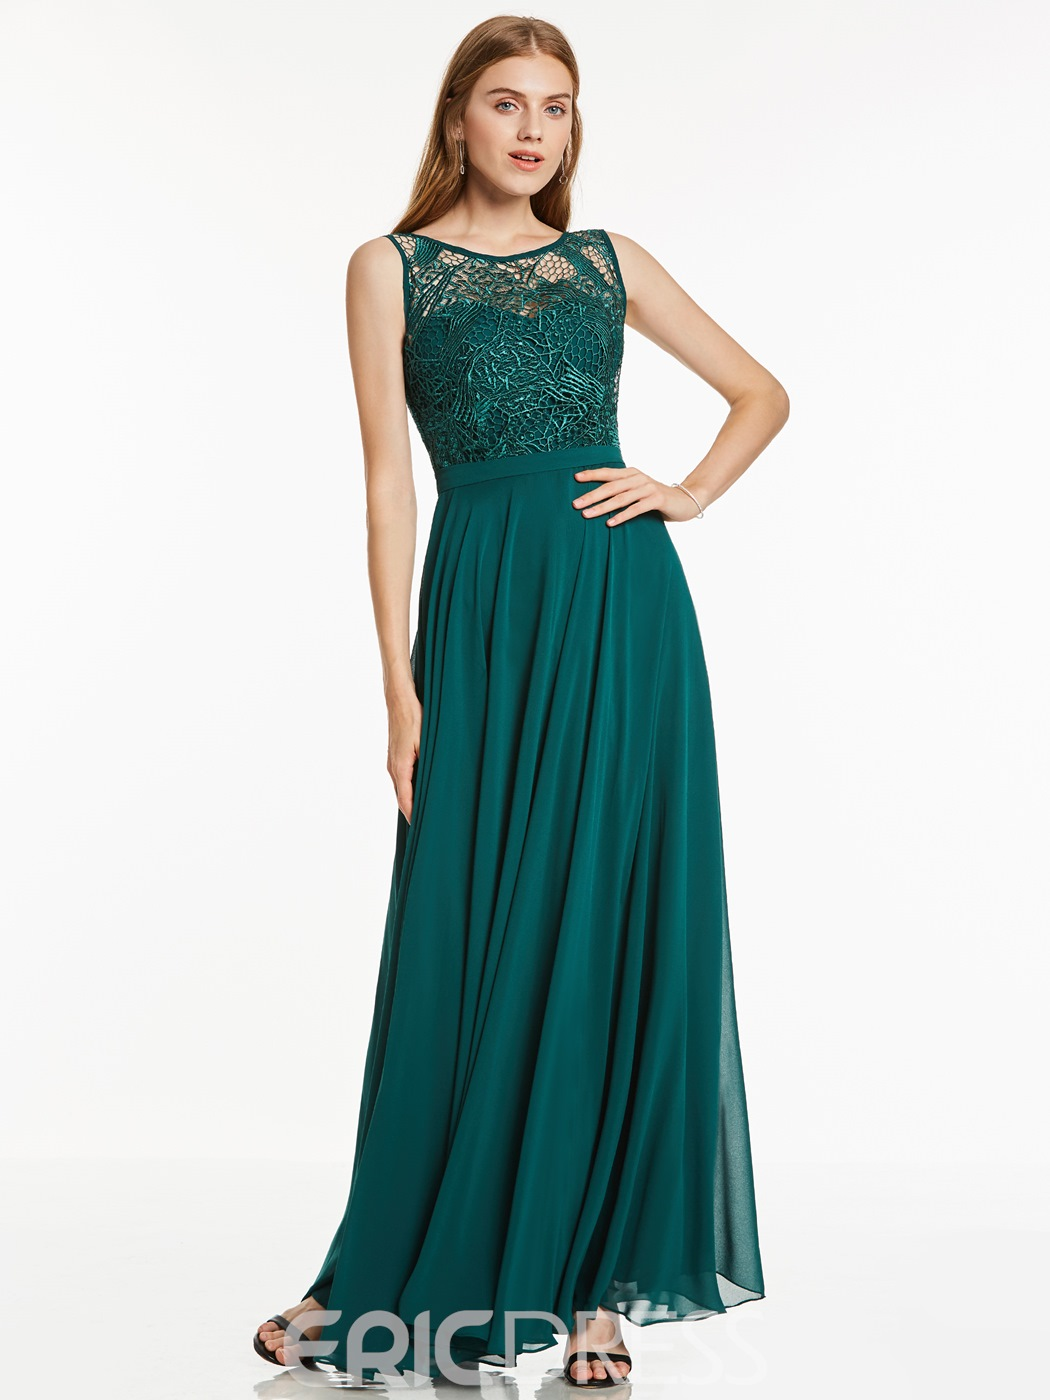 Ericdress A Line Scoop Neckline Lace Chiffon Evening Dress